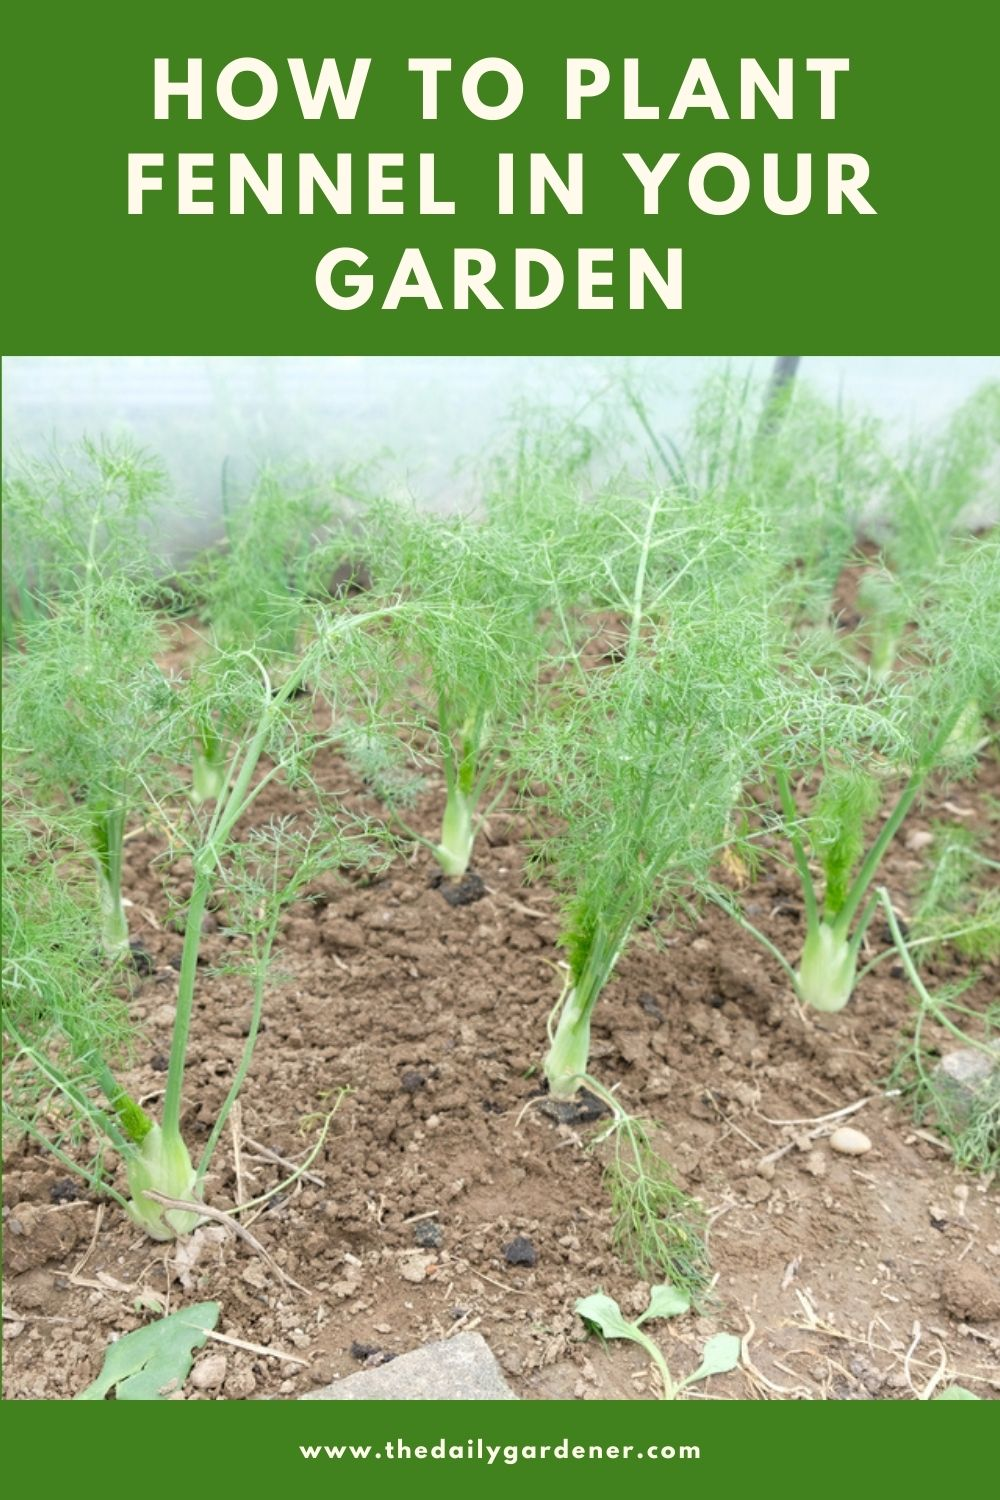 How to Plant Fennel in Your Garden (Tricks to Care!) 1